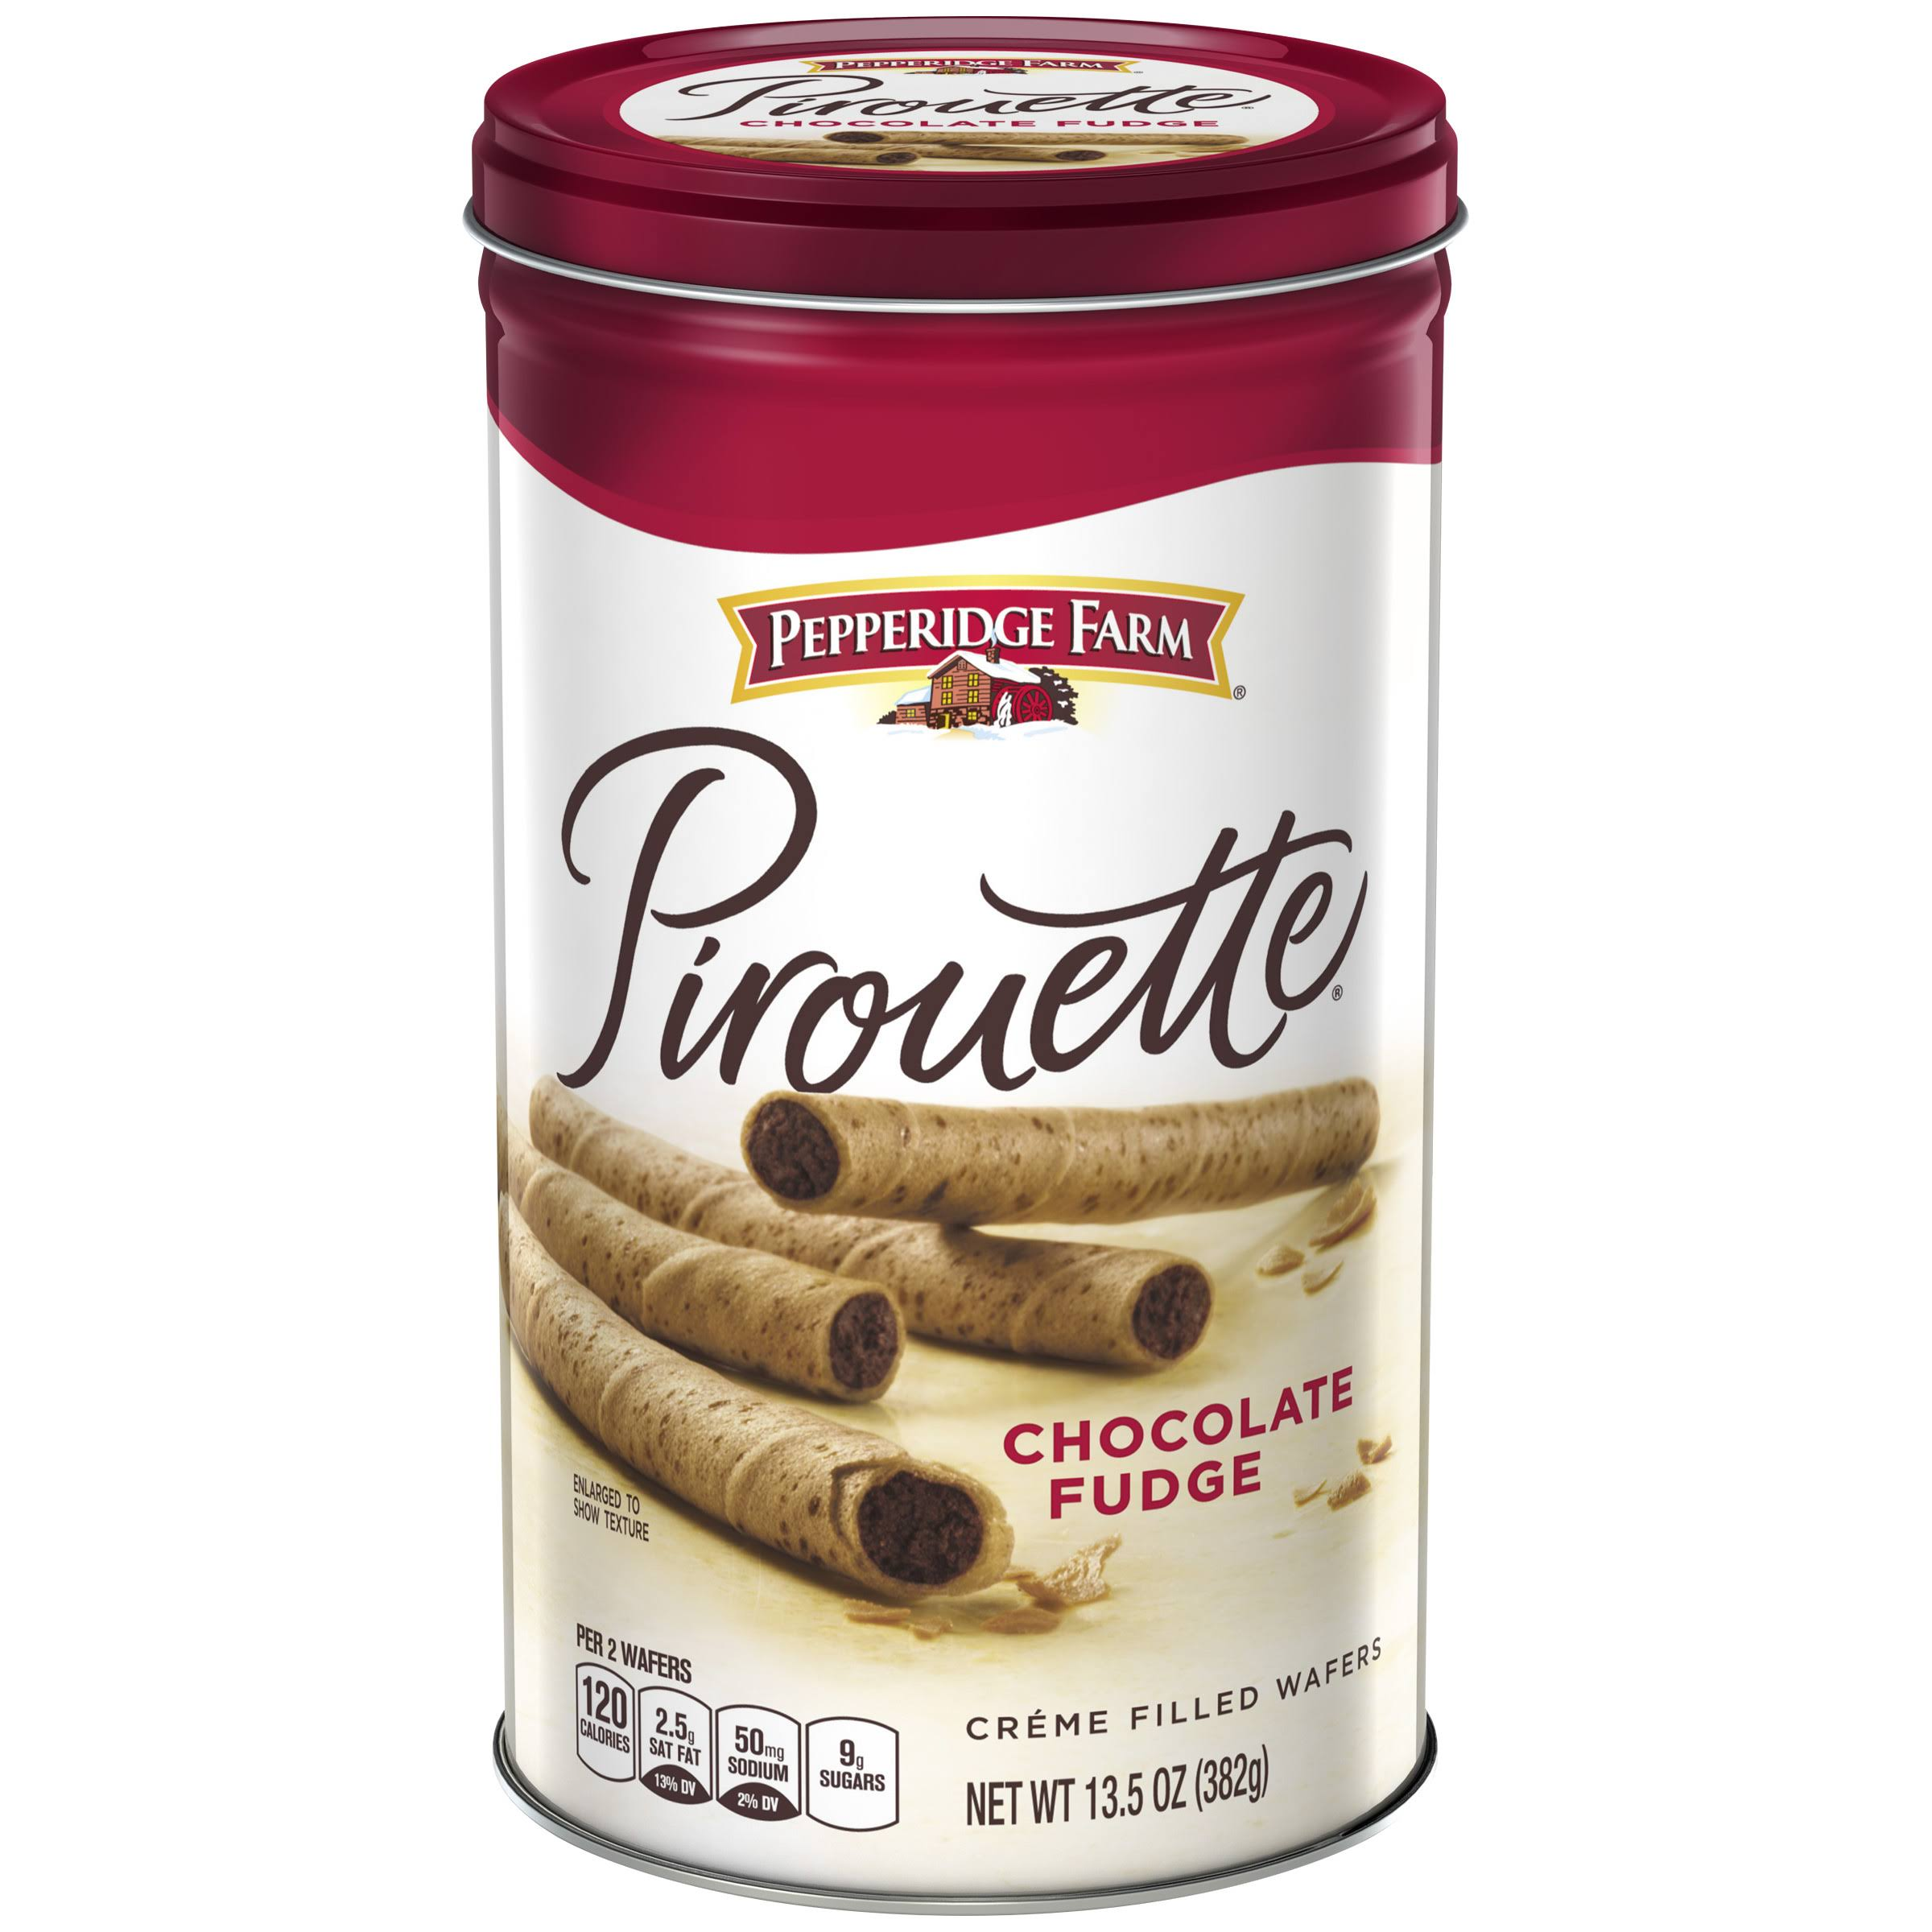 Pepperidge Farm Pirouette Créme Filled Wafers - 382g, Chocolate Fudge